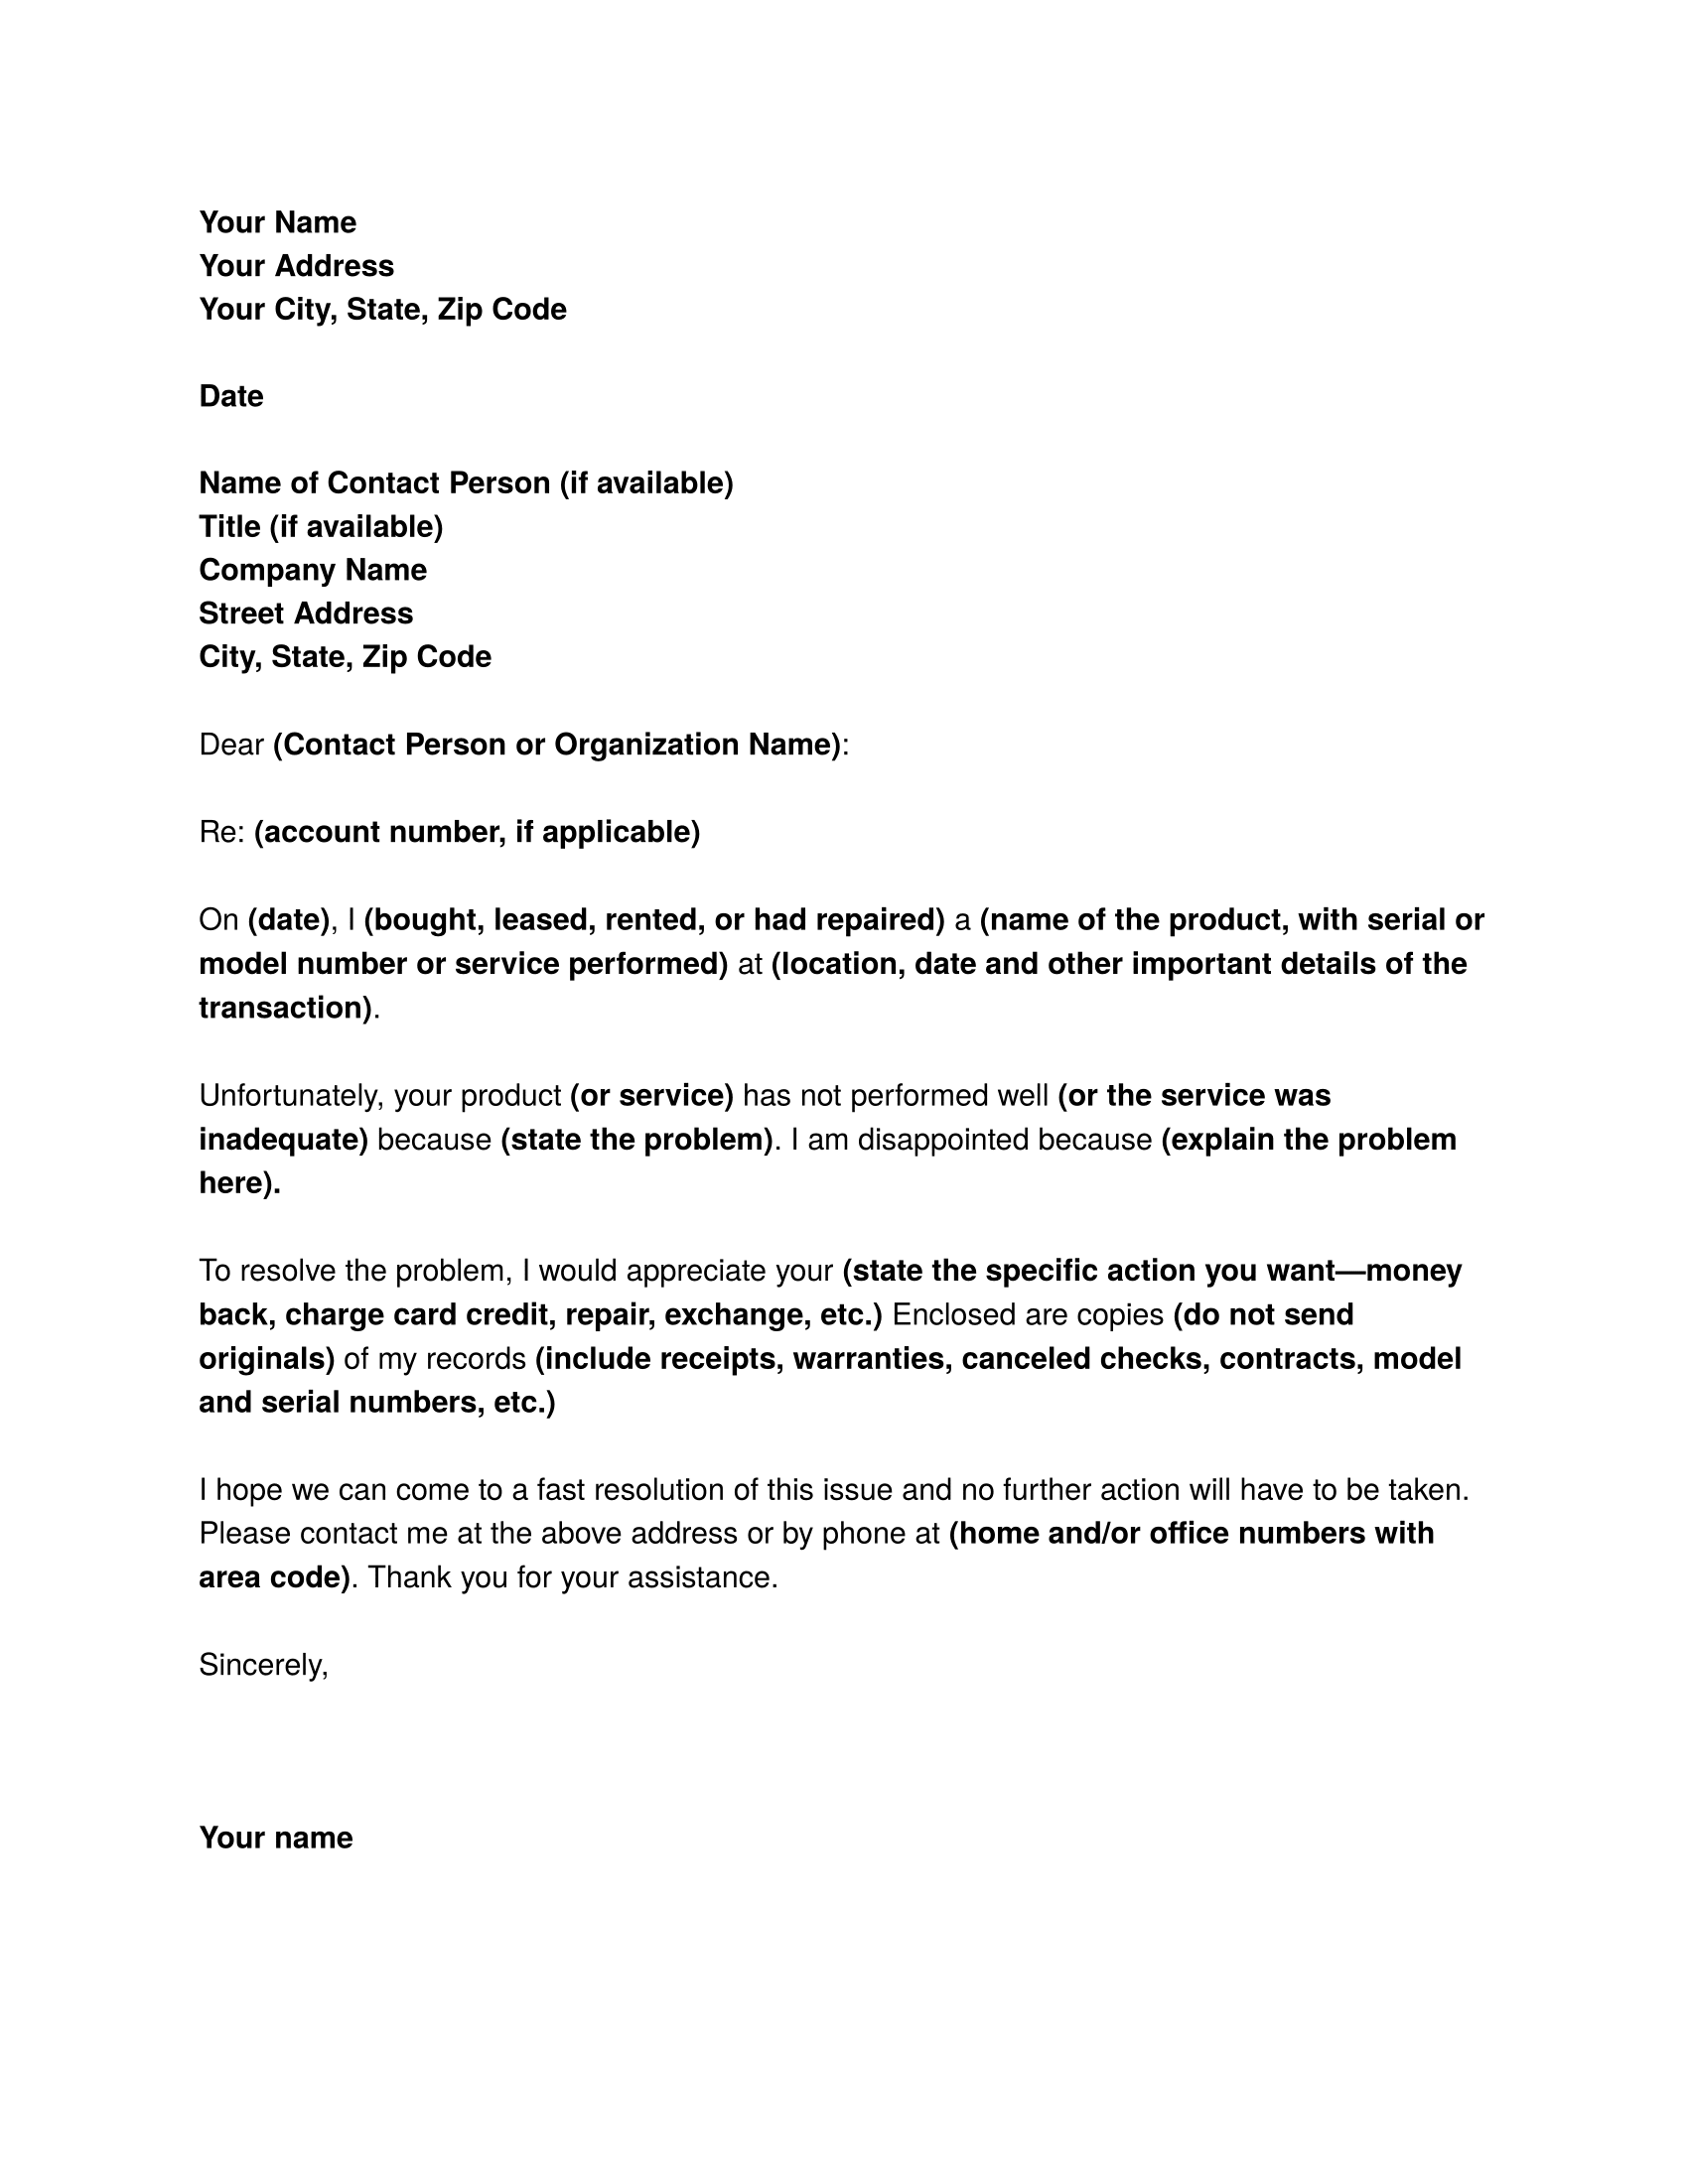 Complaint Letter Sample Download FREE Business Letter Templates – Claim Template Letter